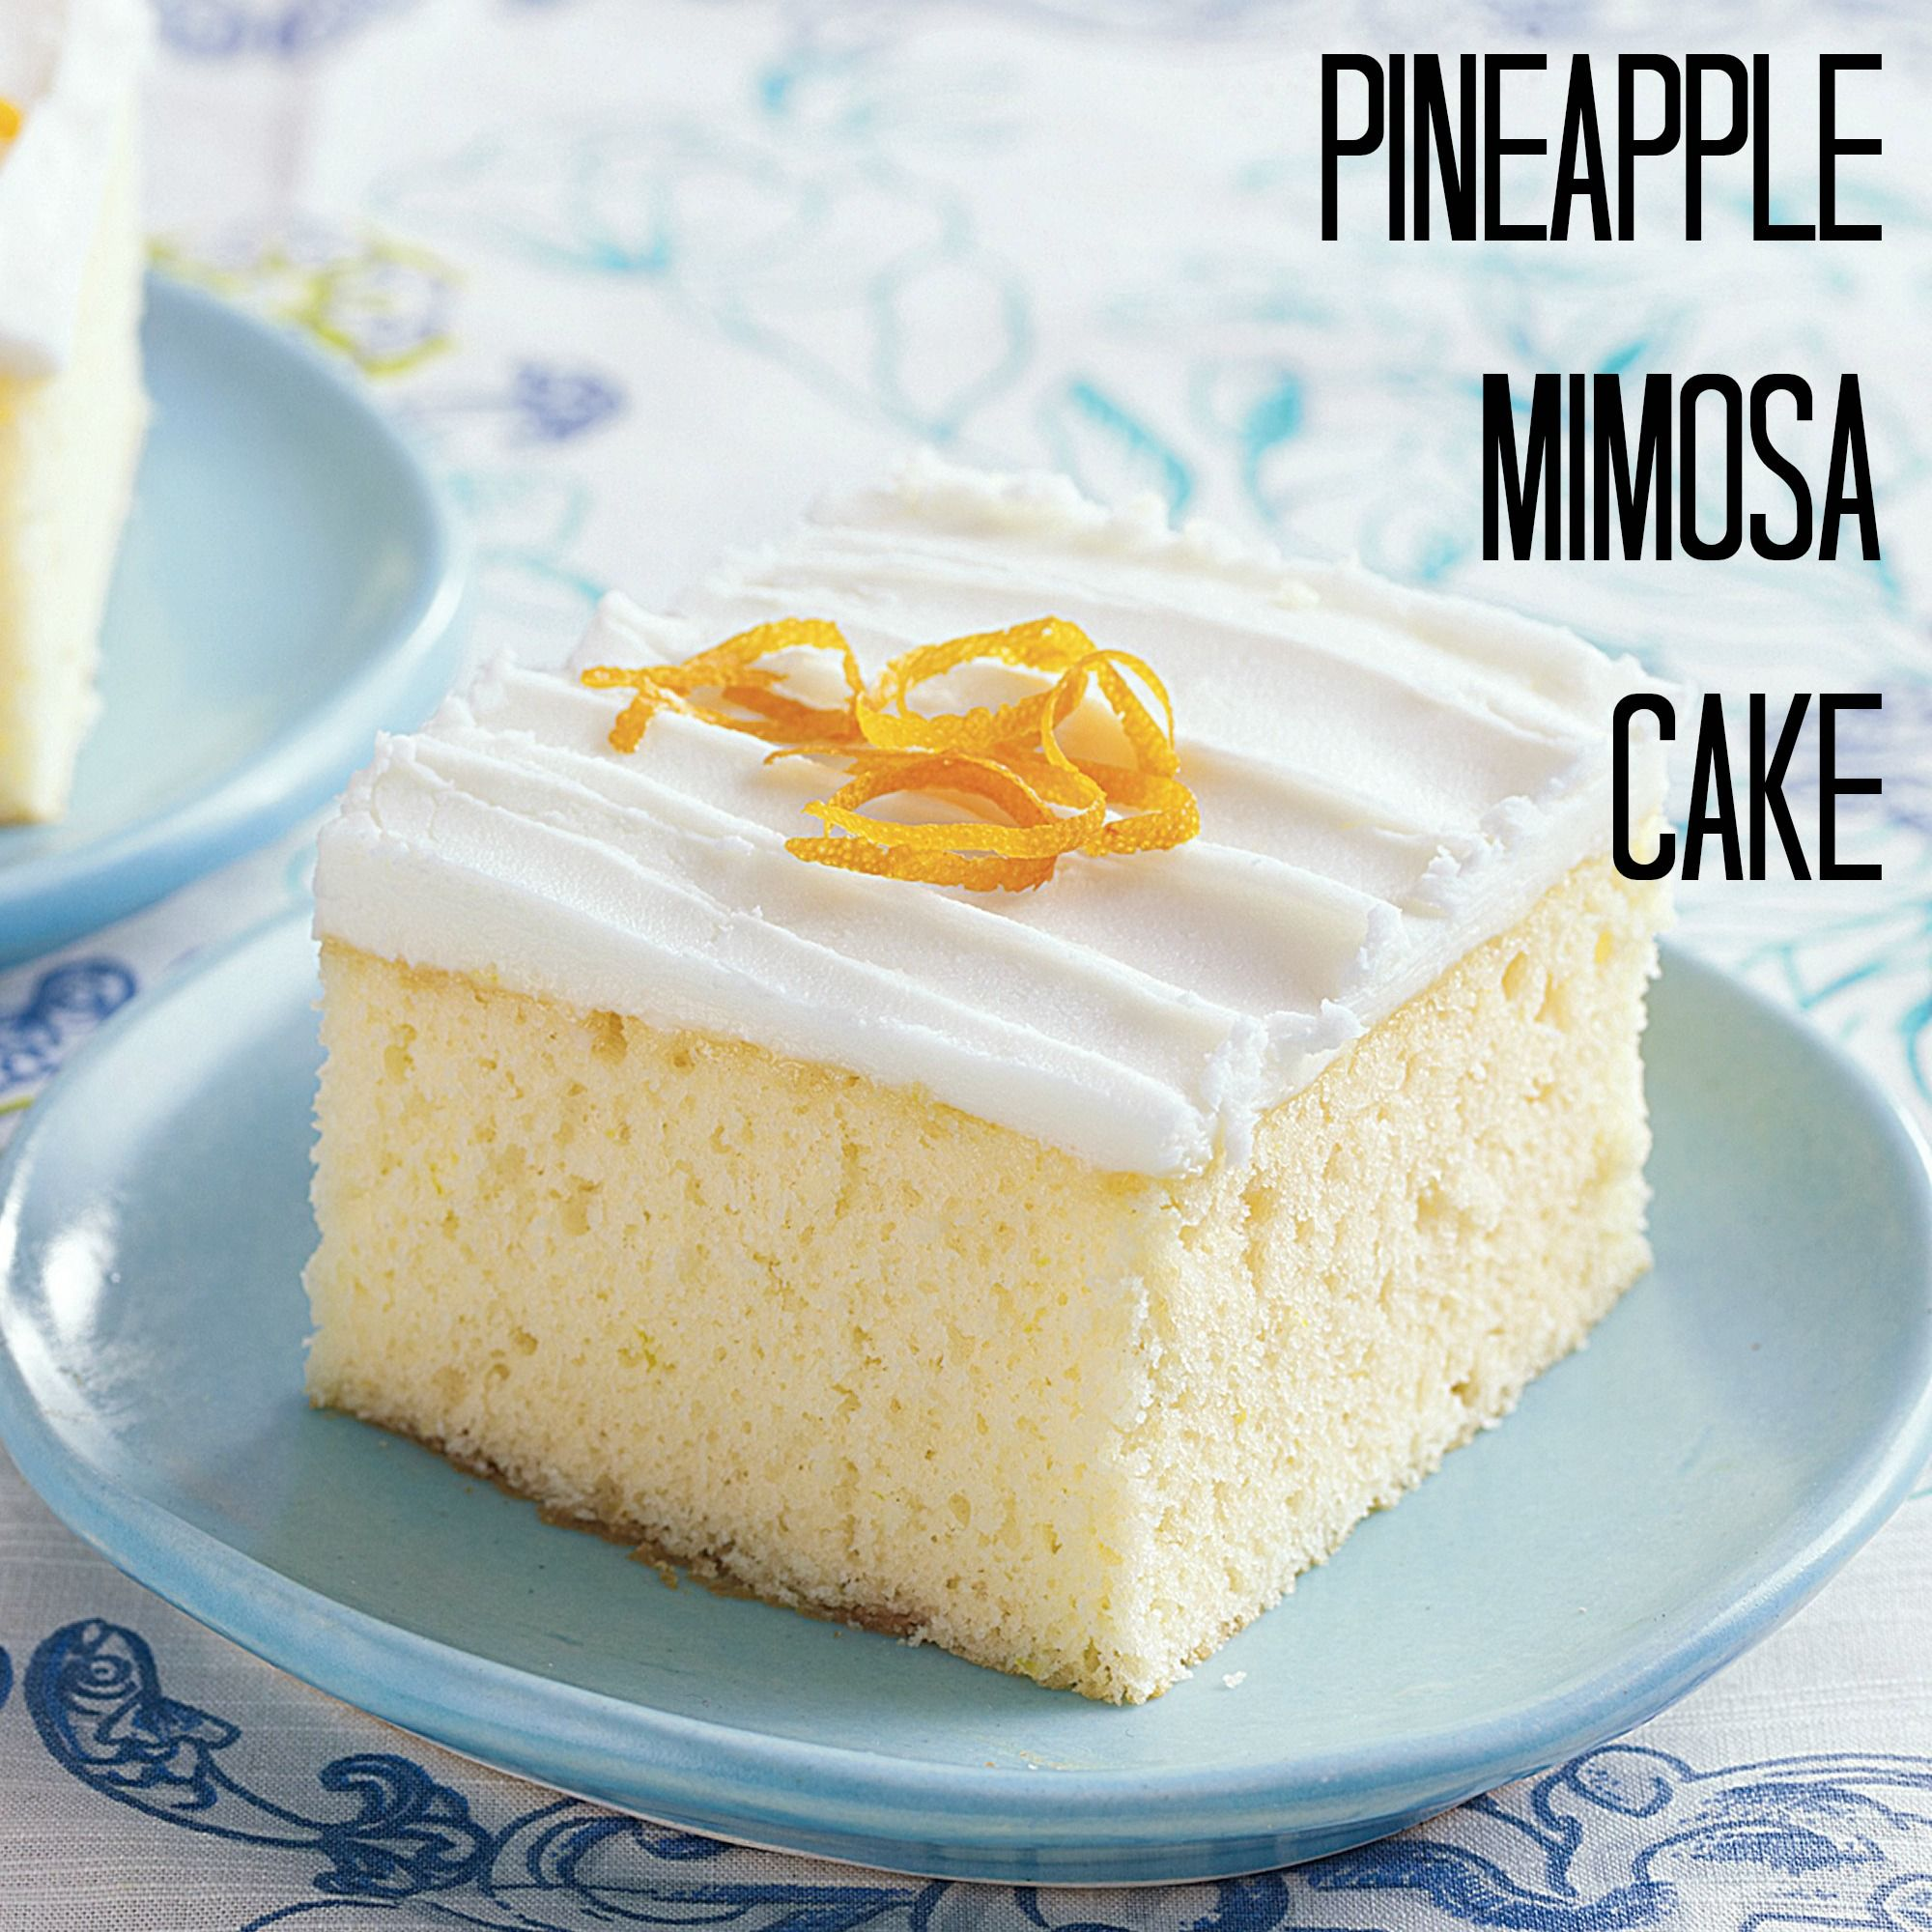 Pineapple Mimosa Cake Recipe With Images Desserts Cake